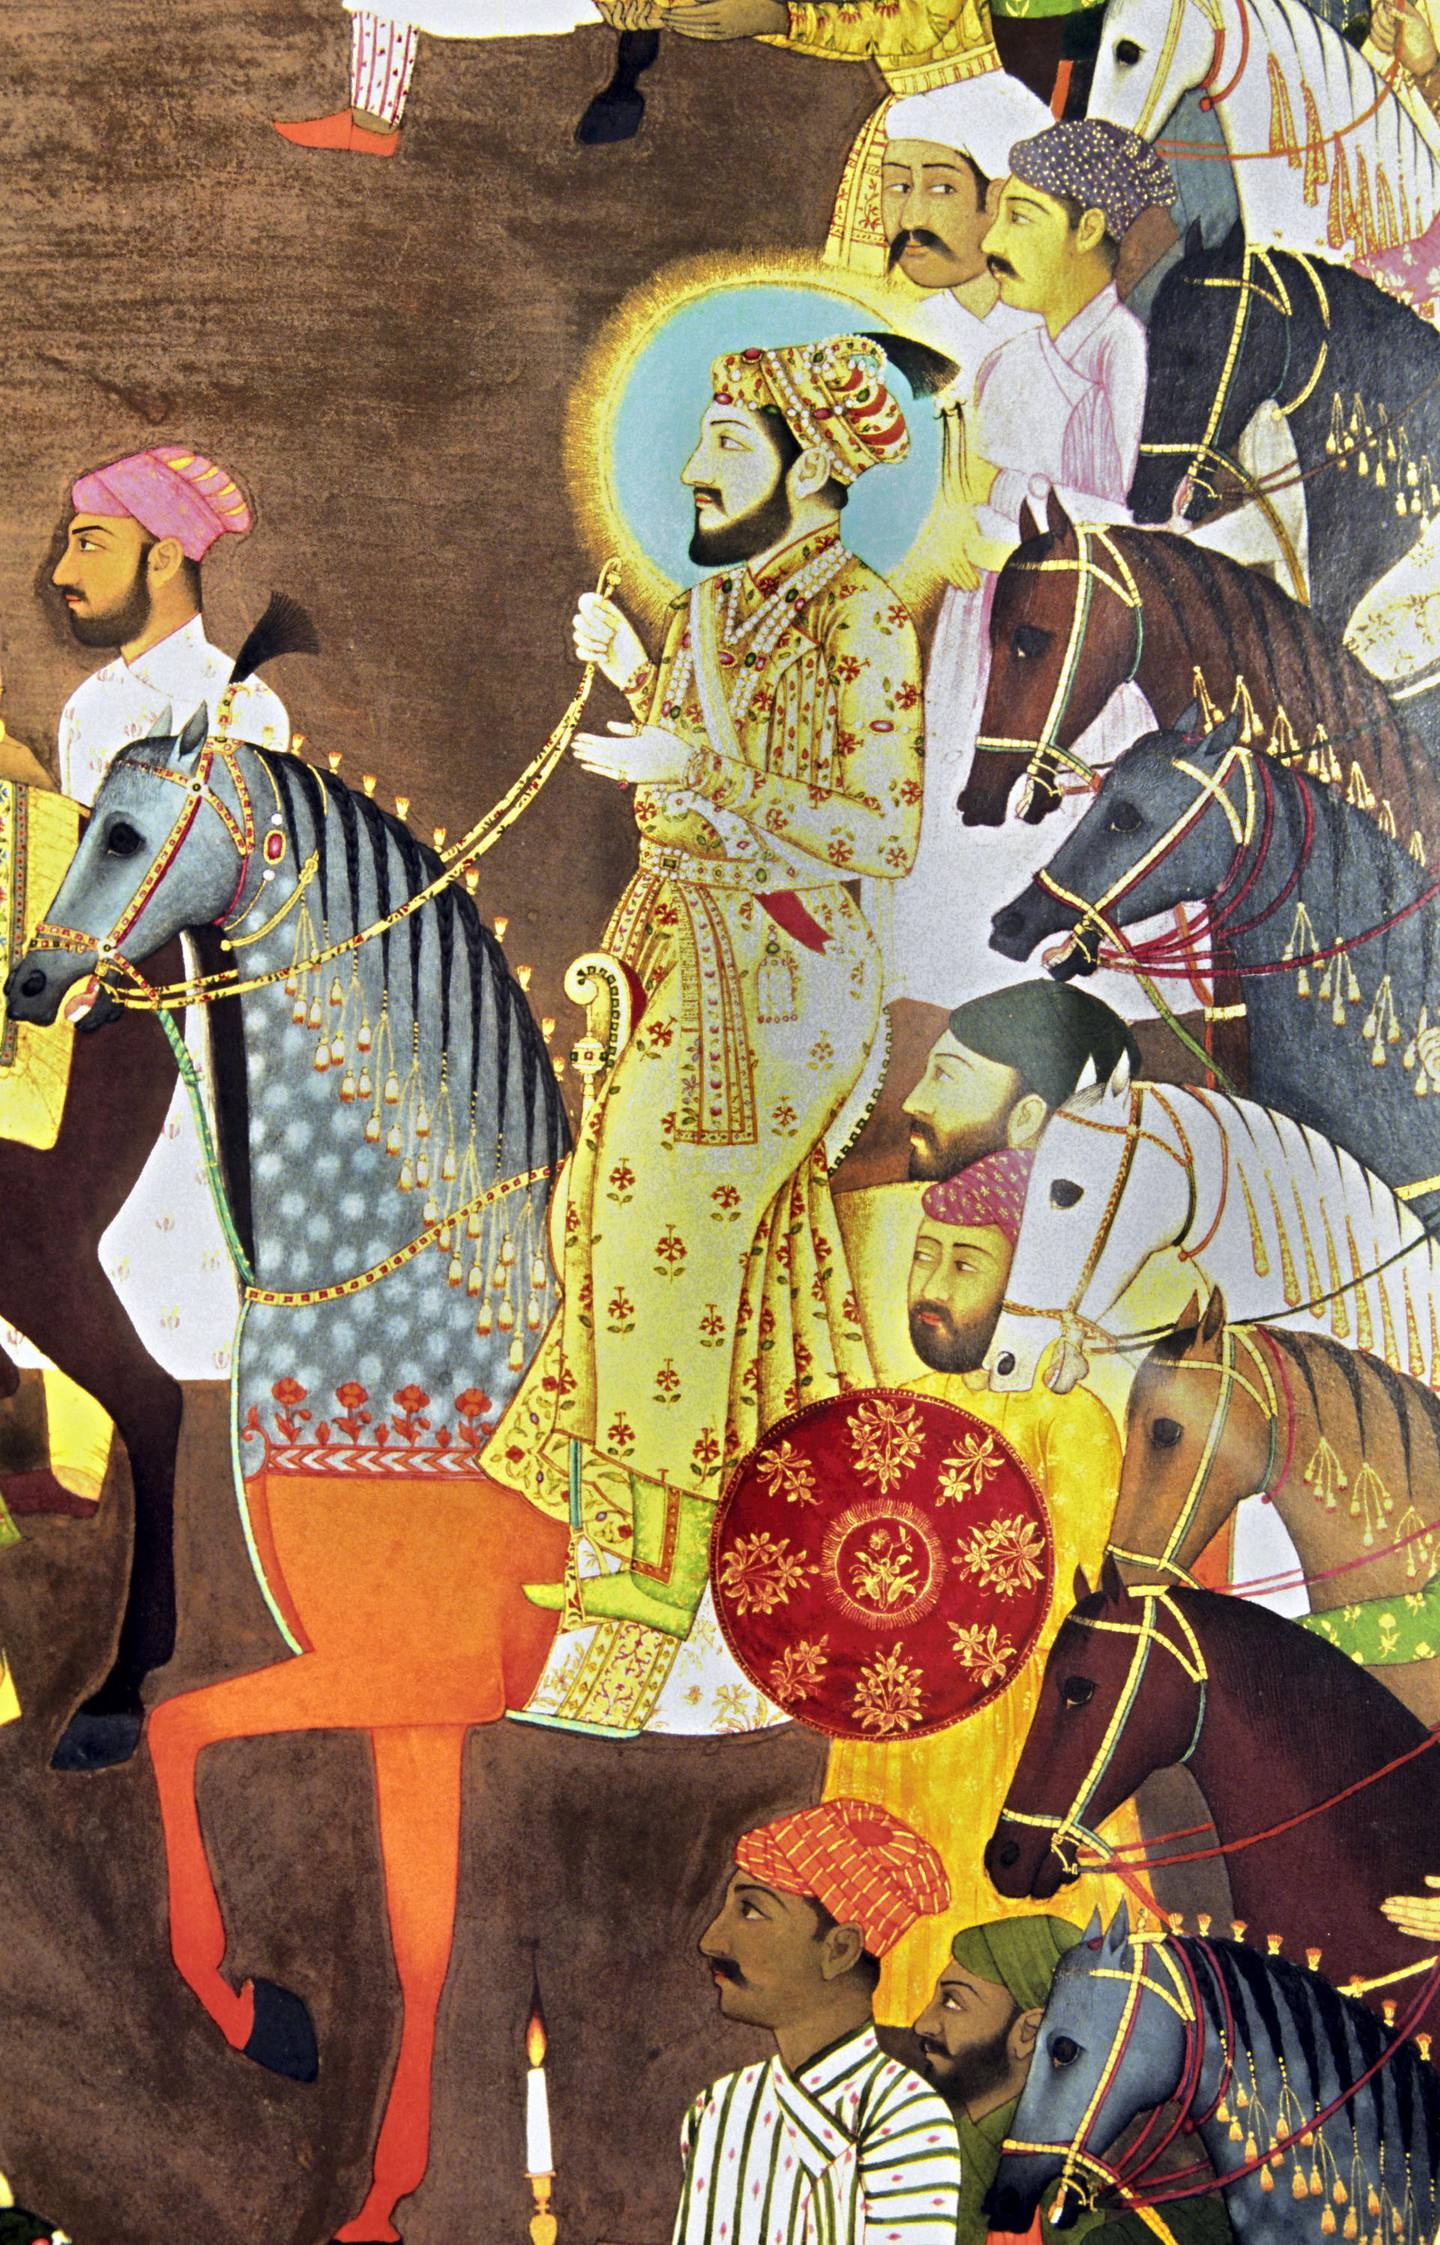 Detail of Shah Jahan from the miniature painting of the wedding of Dara Shikoh, Awadh, 1740, National Museum, New Delhi, India. (Photo by: IndiaPictures/UIG via Getty Images)